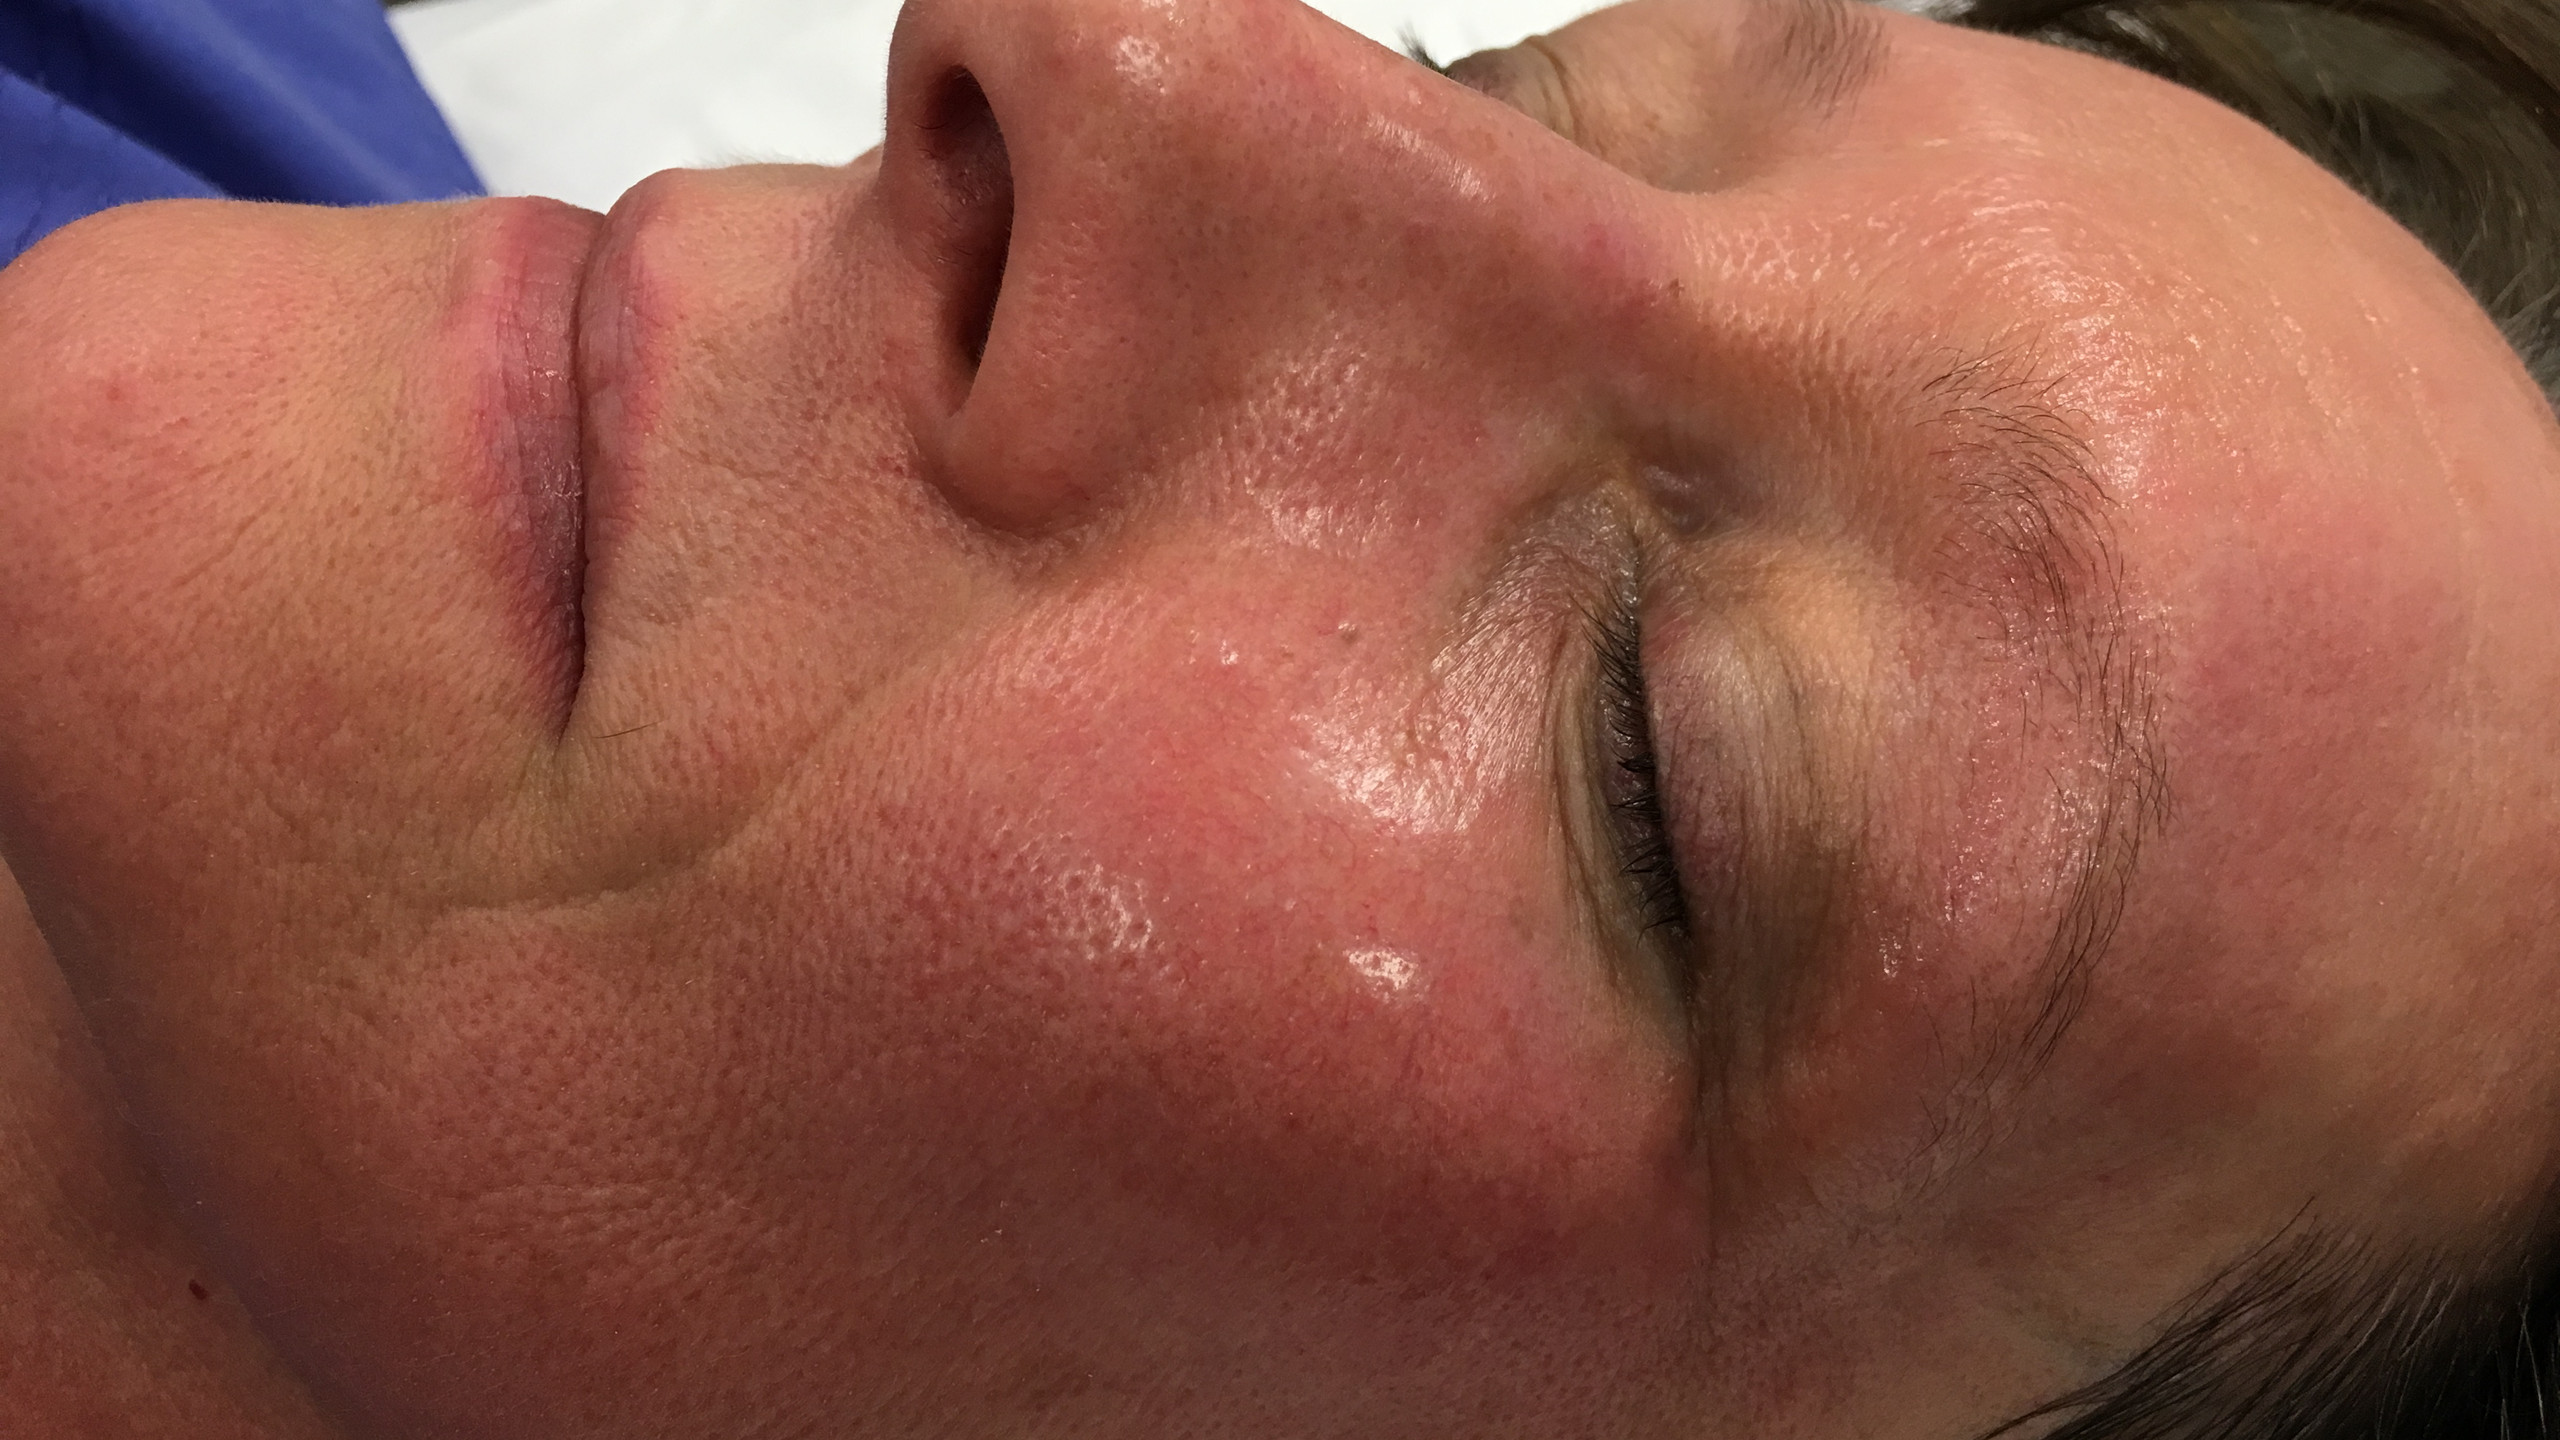 Collagen induction via heat